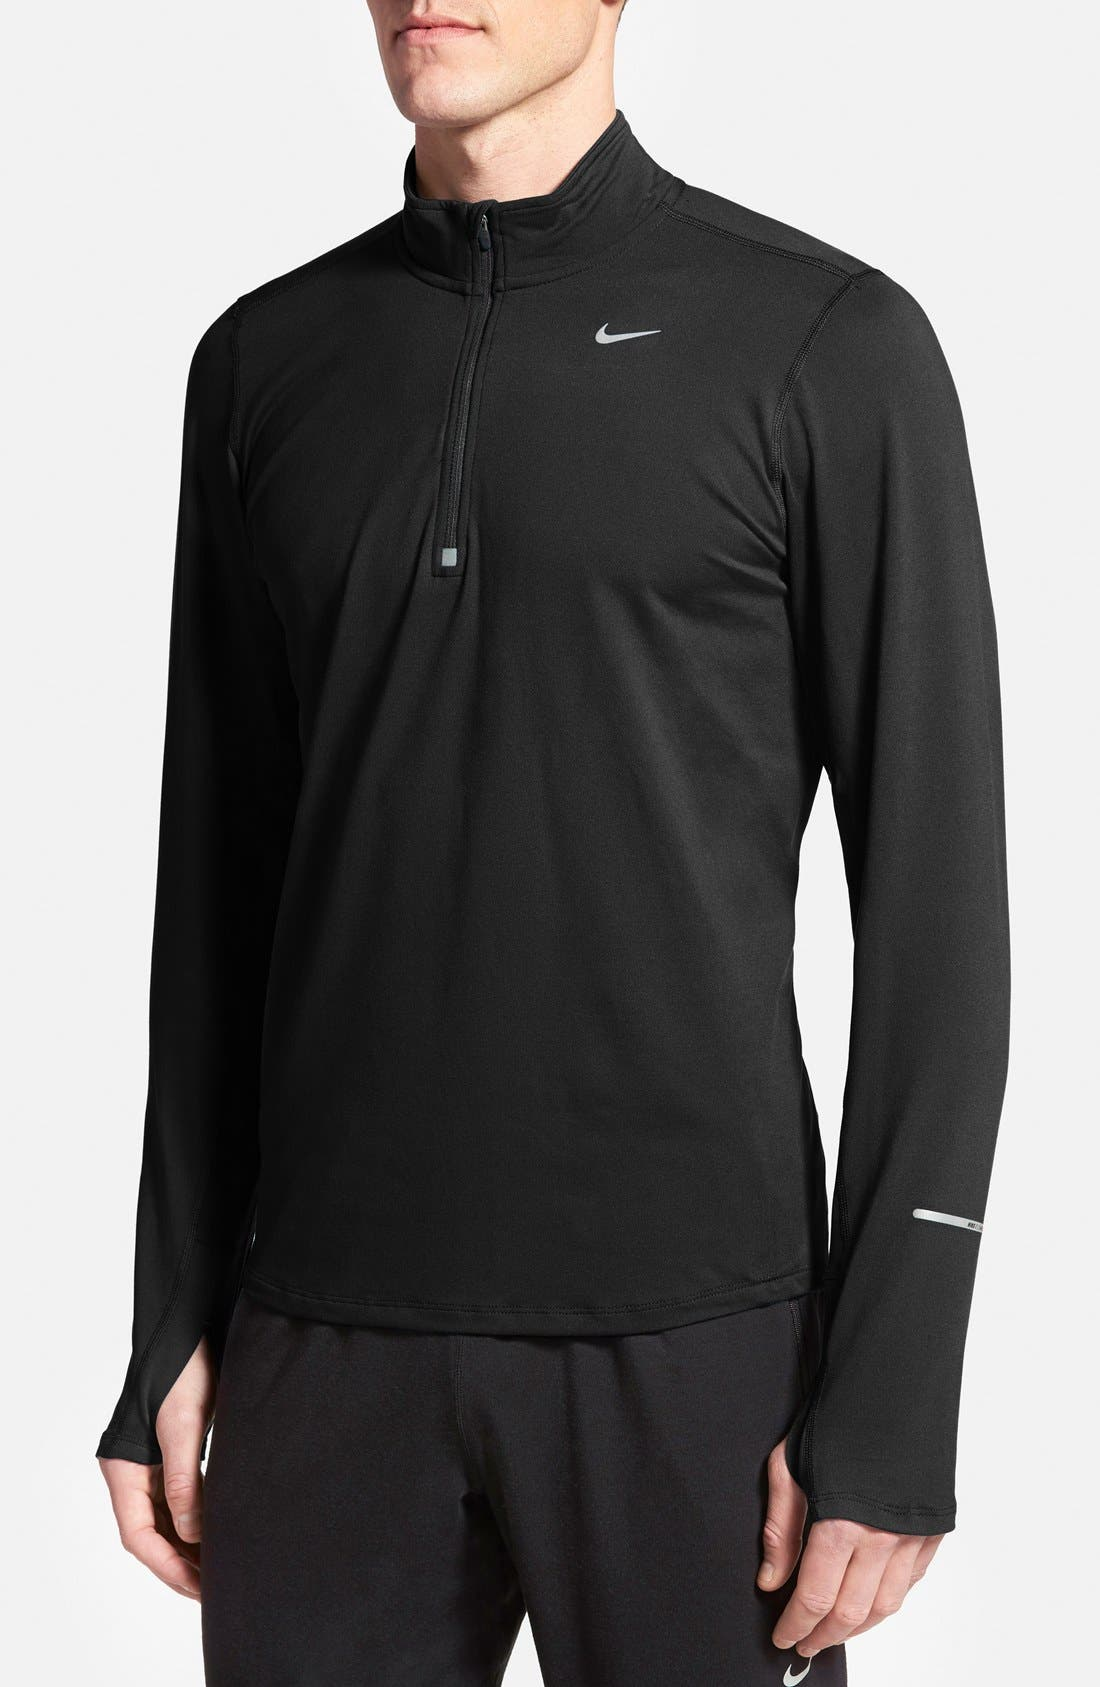 Alternate Image 1 Selected - Nike 'Element' Dri-FIT Half Zip Running Top